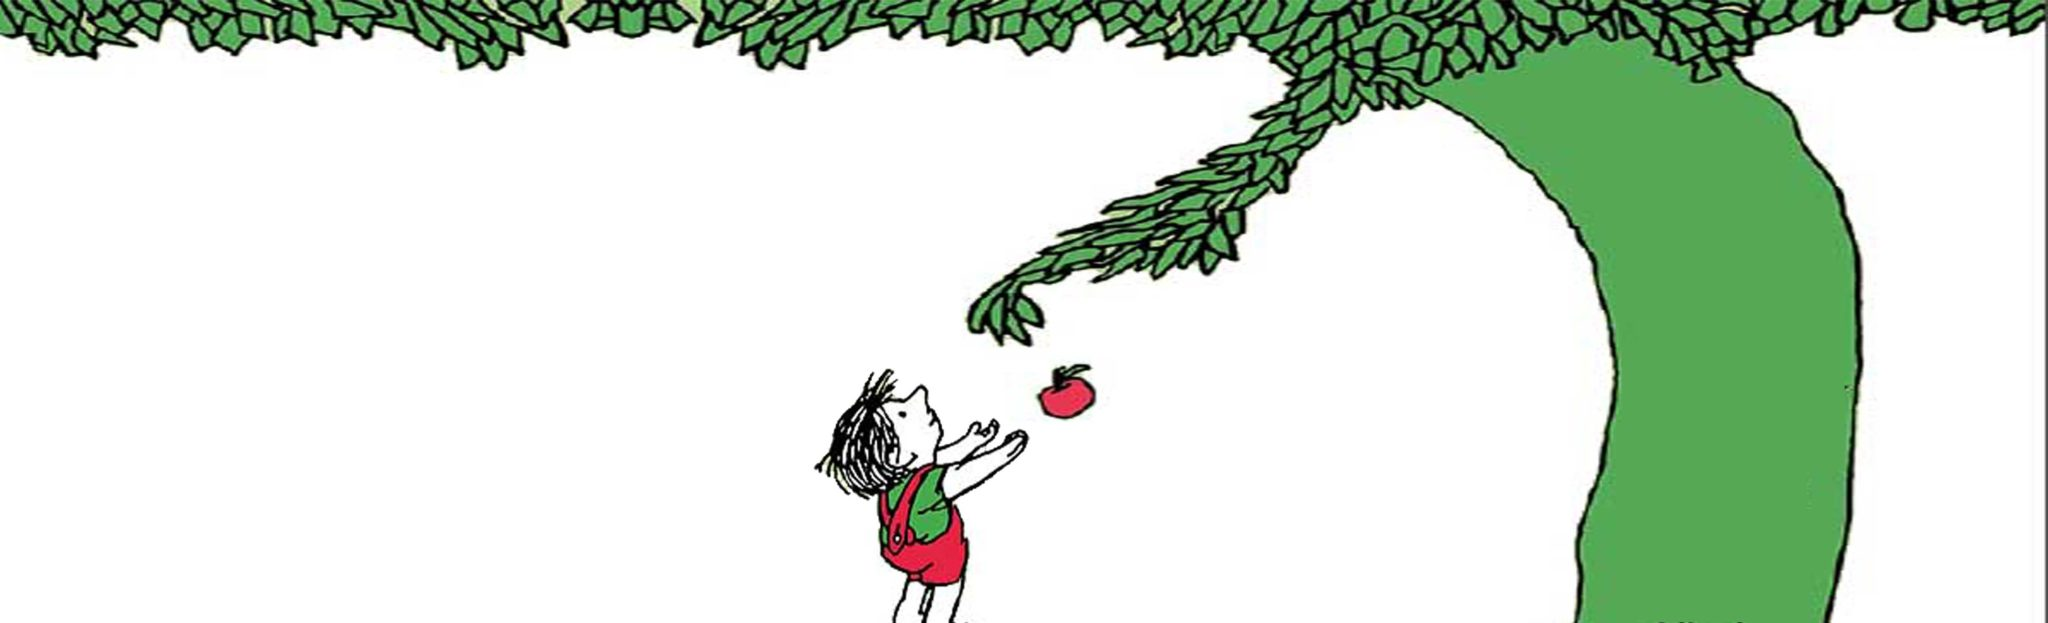 10 Things Shel Silverstein's The Giving Tree Taught Us (Besides Giving, That Is)